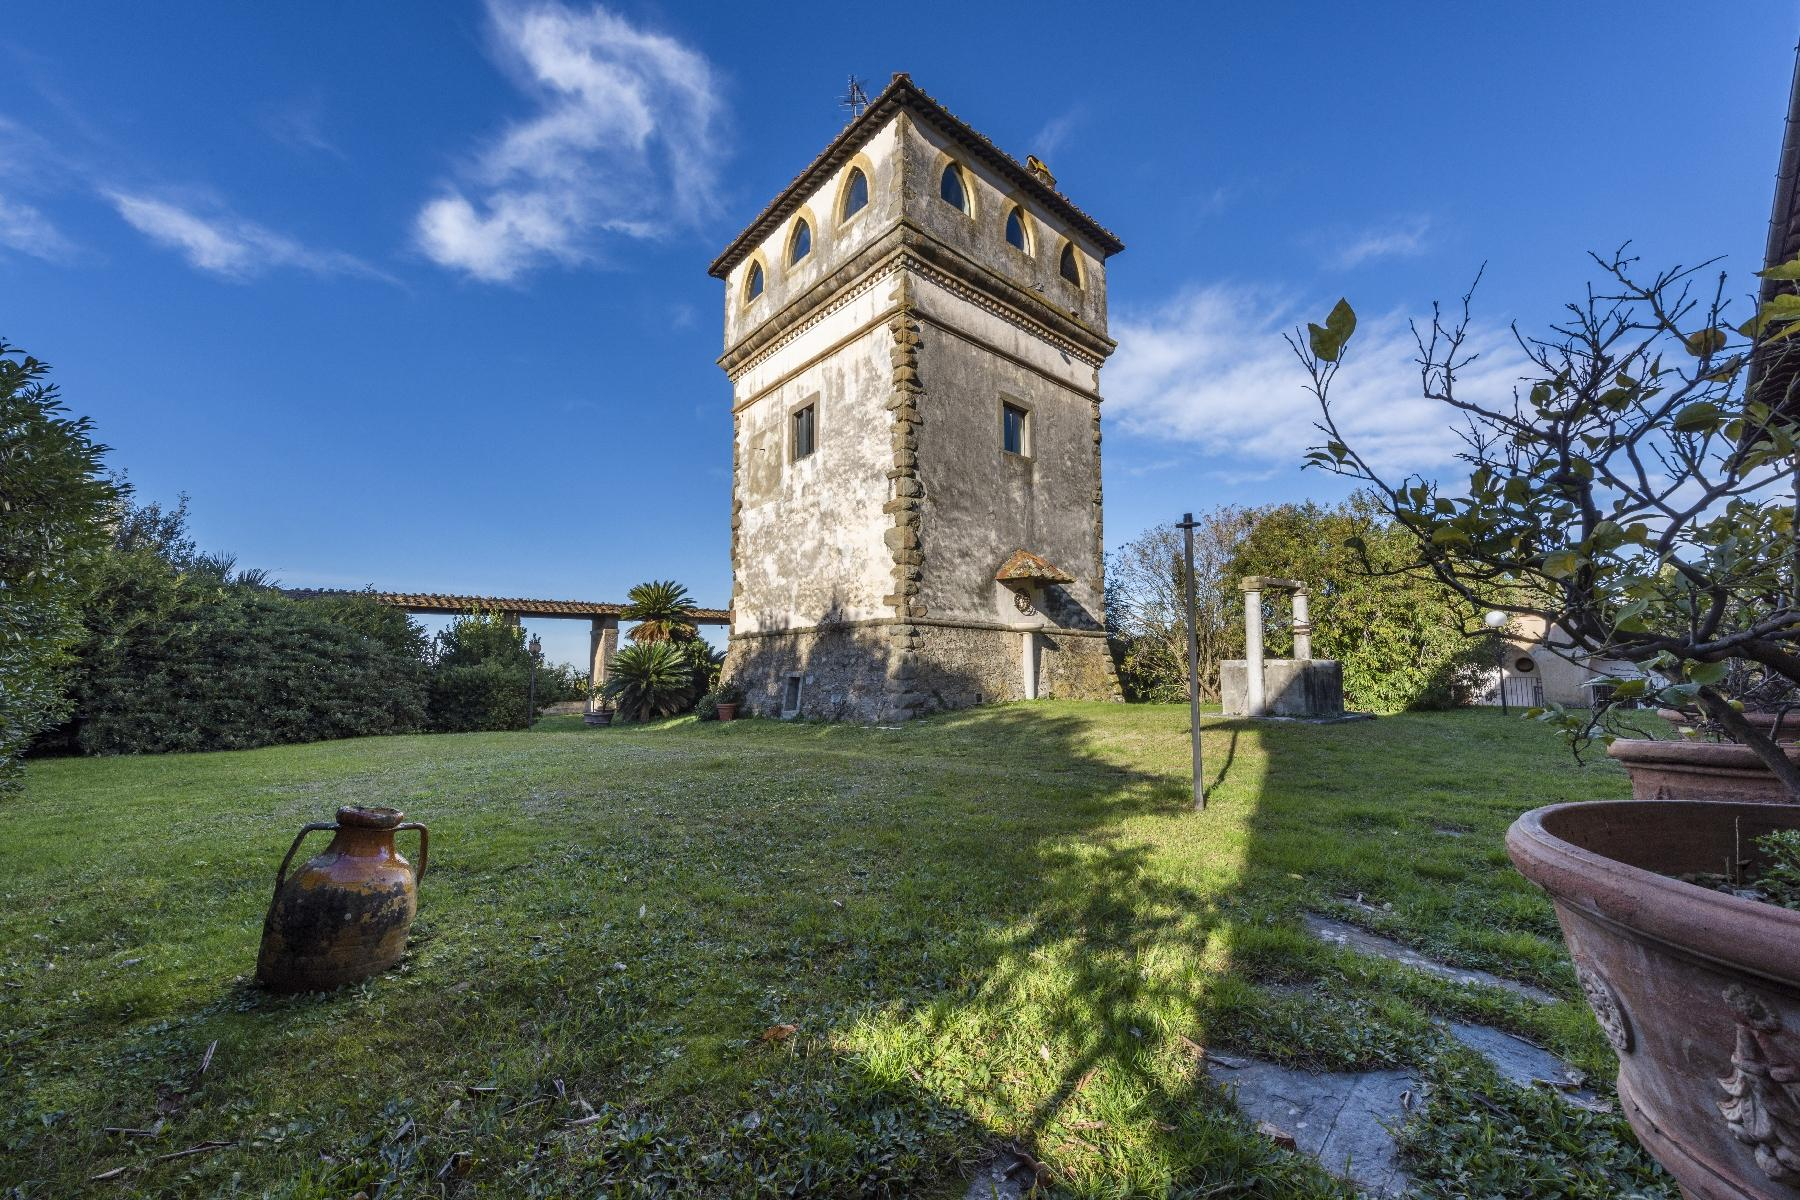 Stunning historic Villa with tower in Camaiore - 10